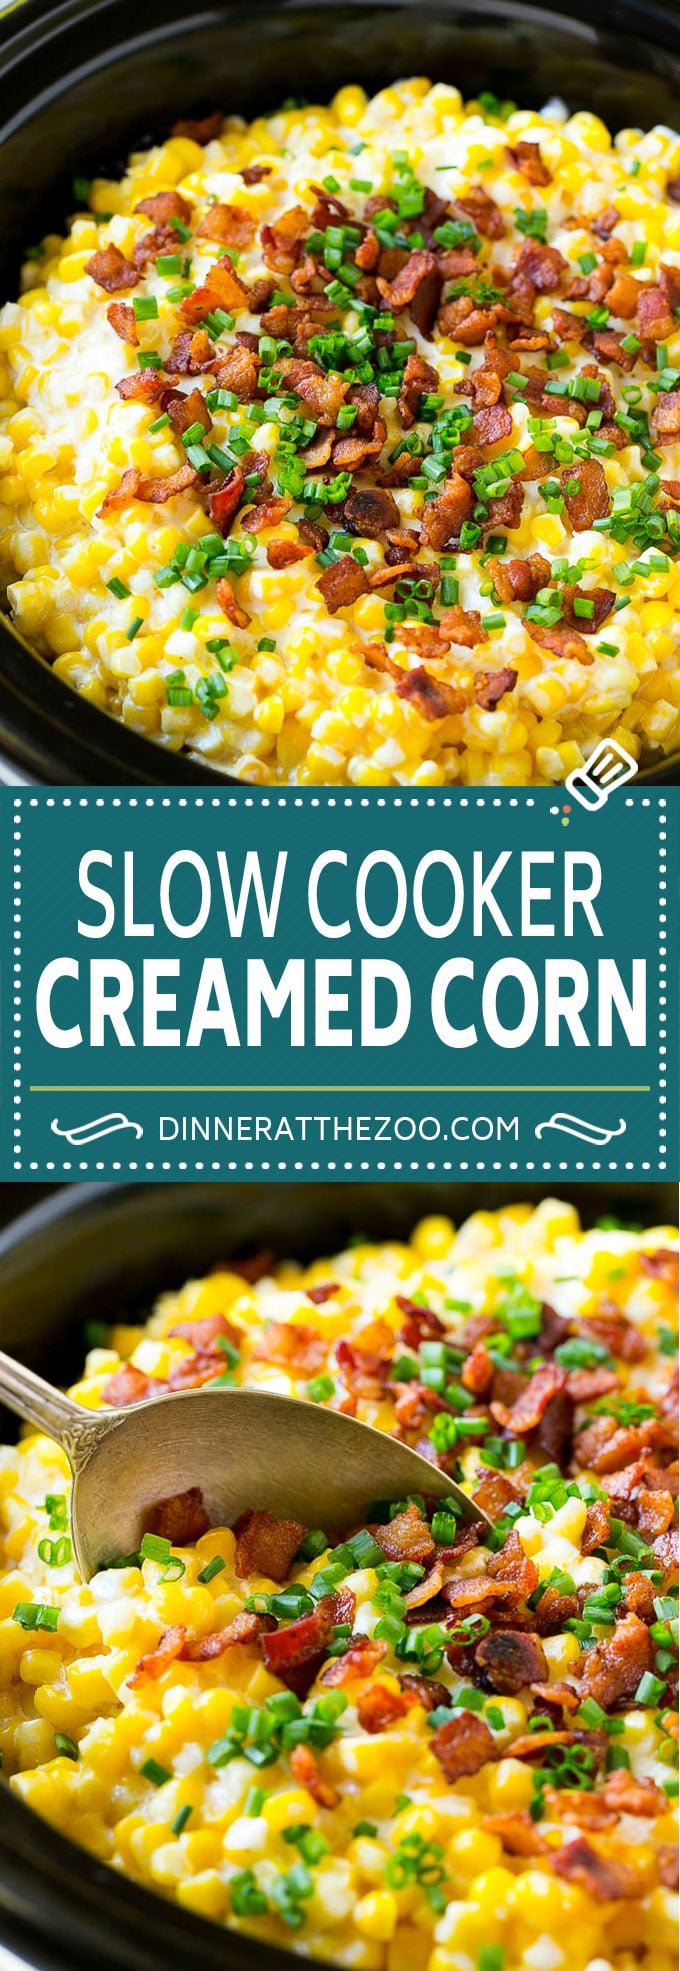 Slow Cooker Creamed Corn Recipe | Easy Creamed Corn Recipe | Slow Cooker Creamed Corn with Bacon | Southern Creamed Corn #corn #bacon #sidedish #slowcooker #crockpot #dinneratthezoo